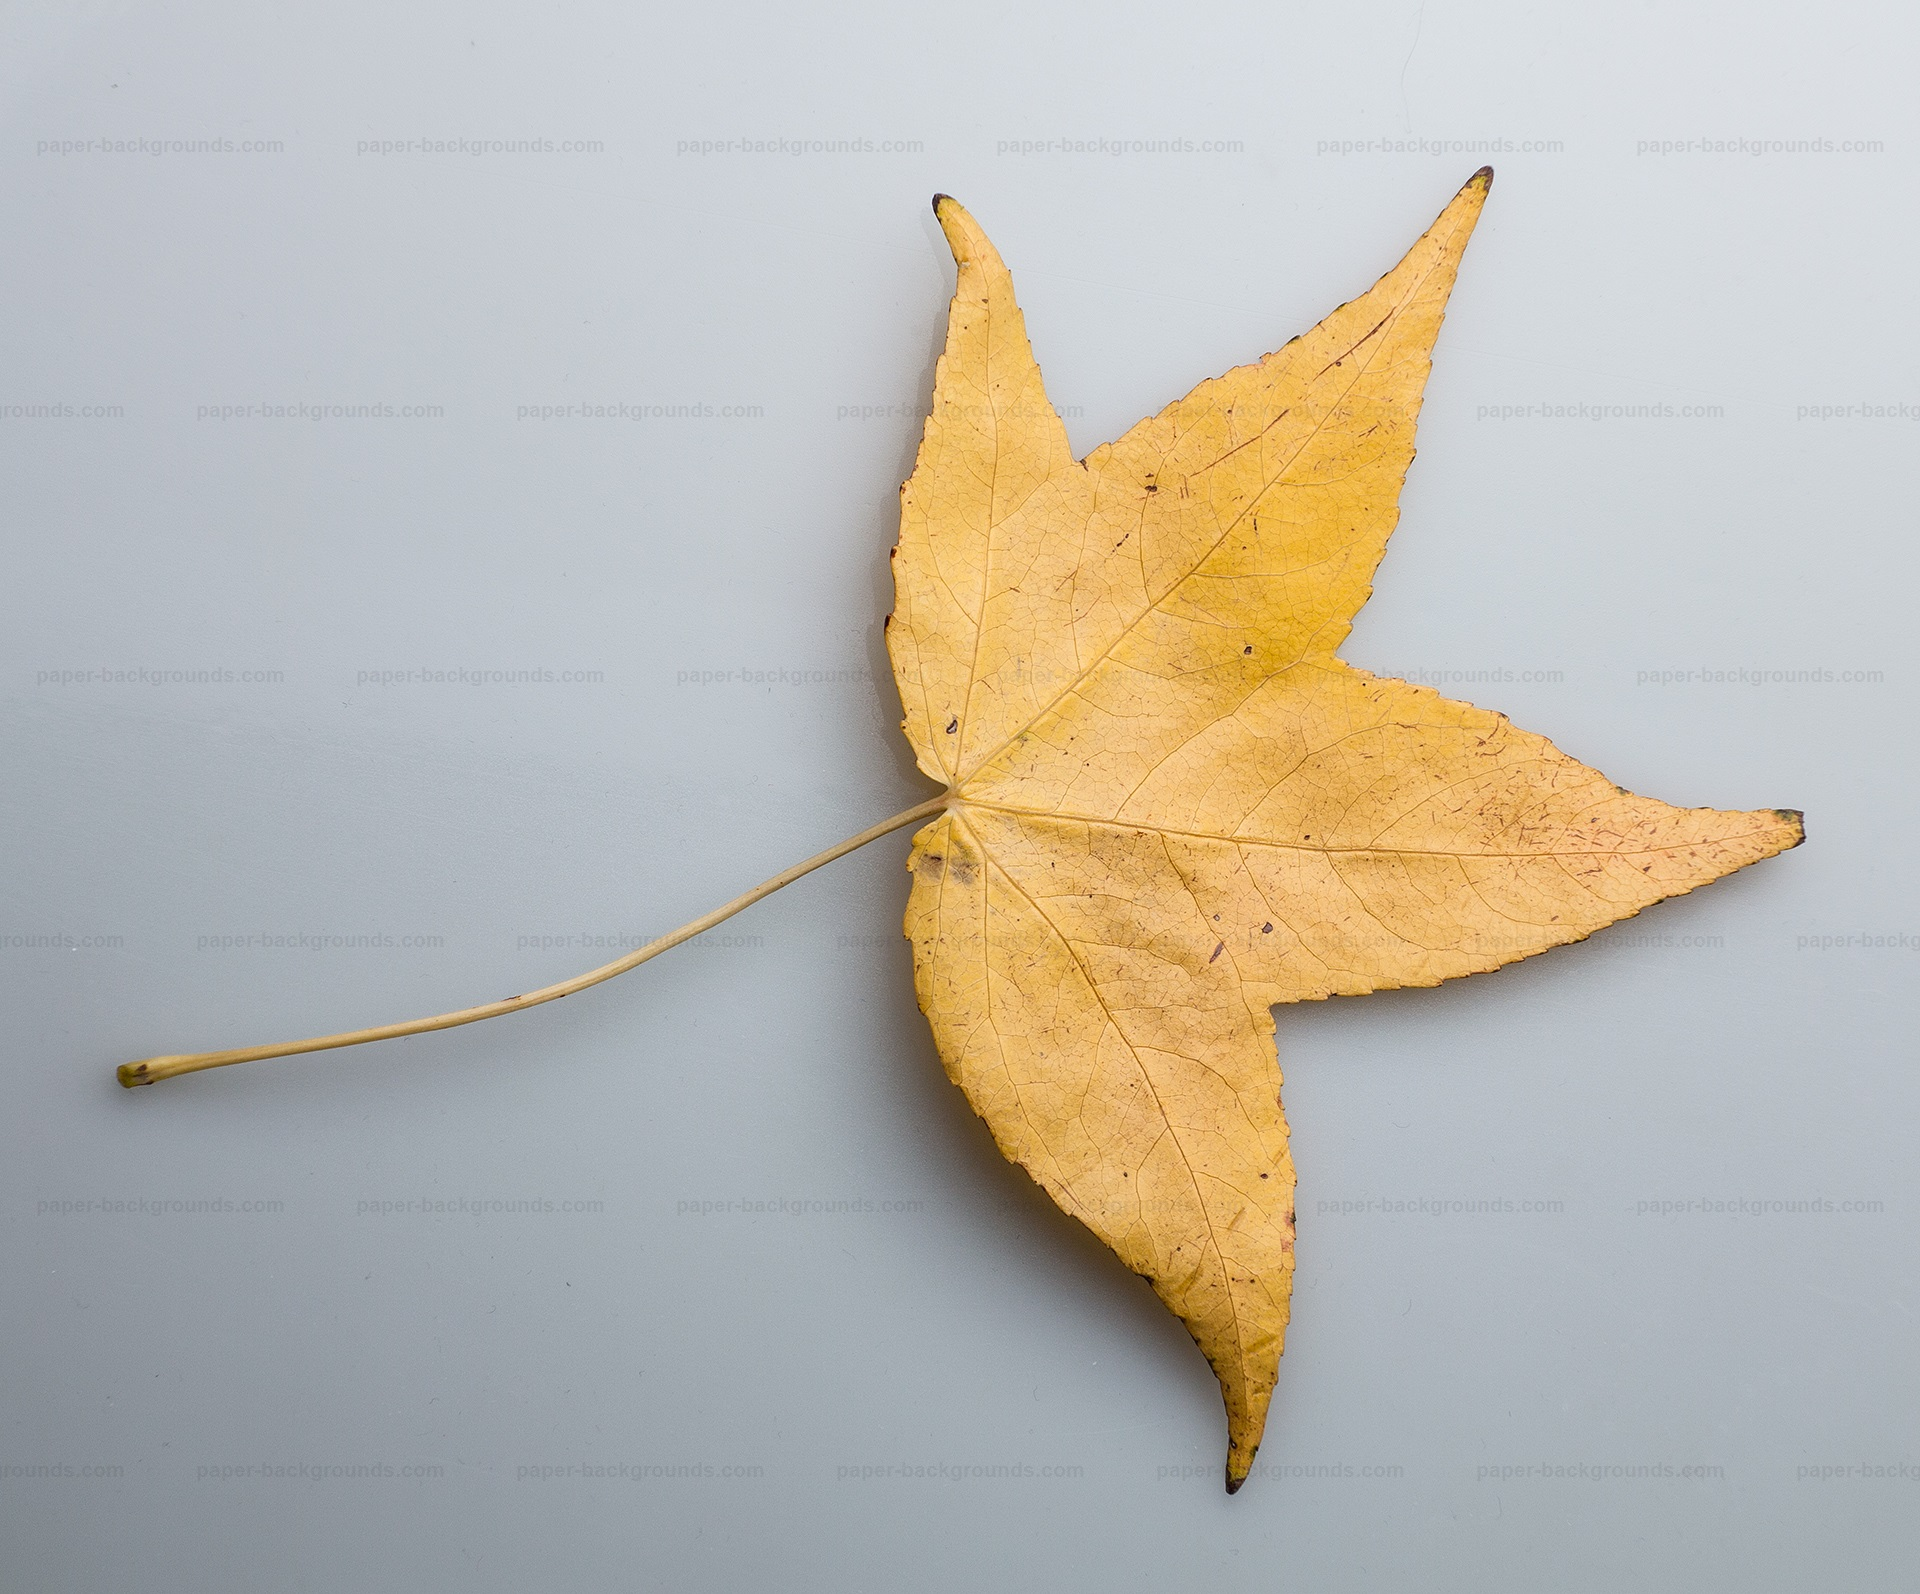 Dry Yellow Leaf Photo HD